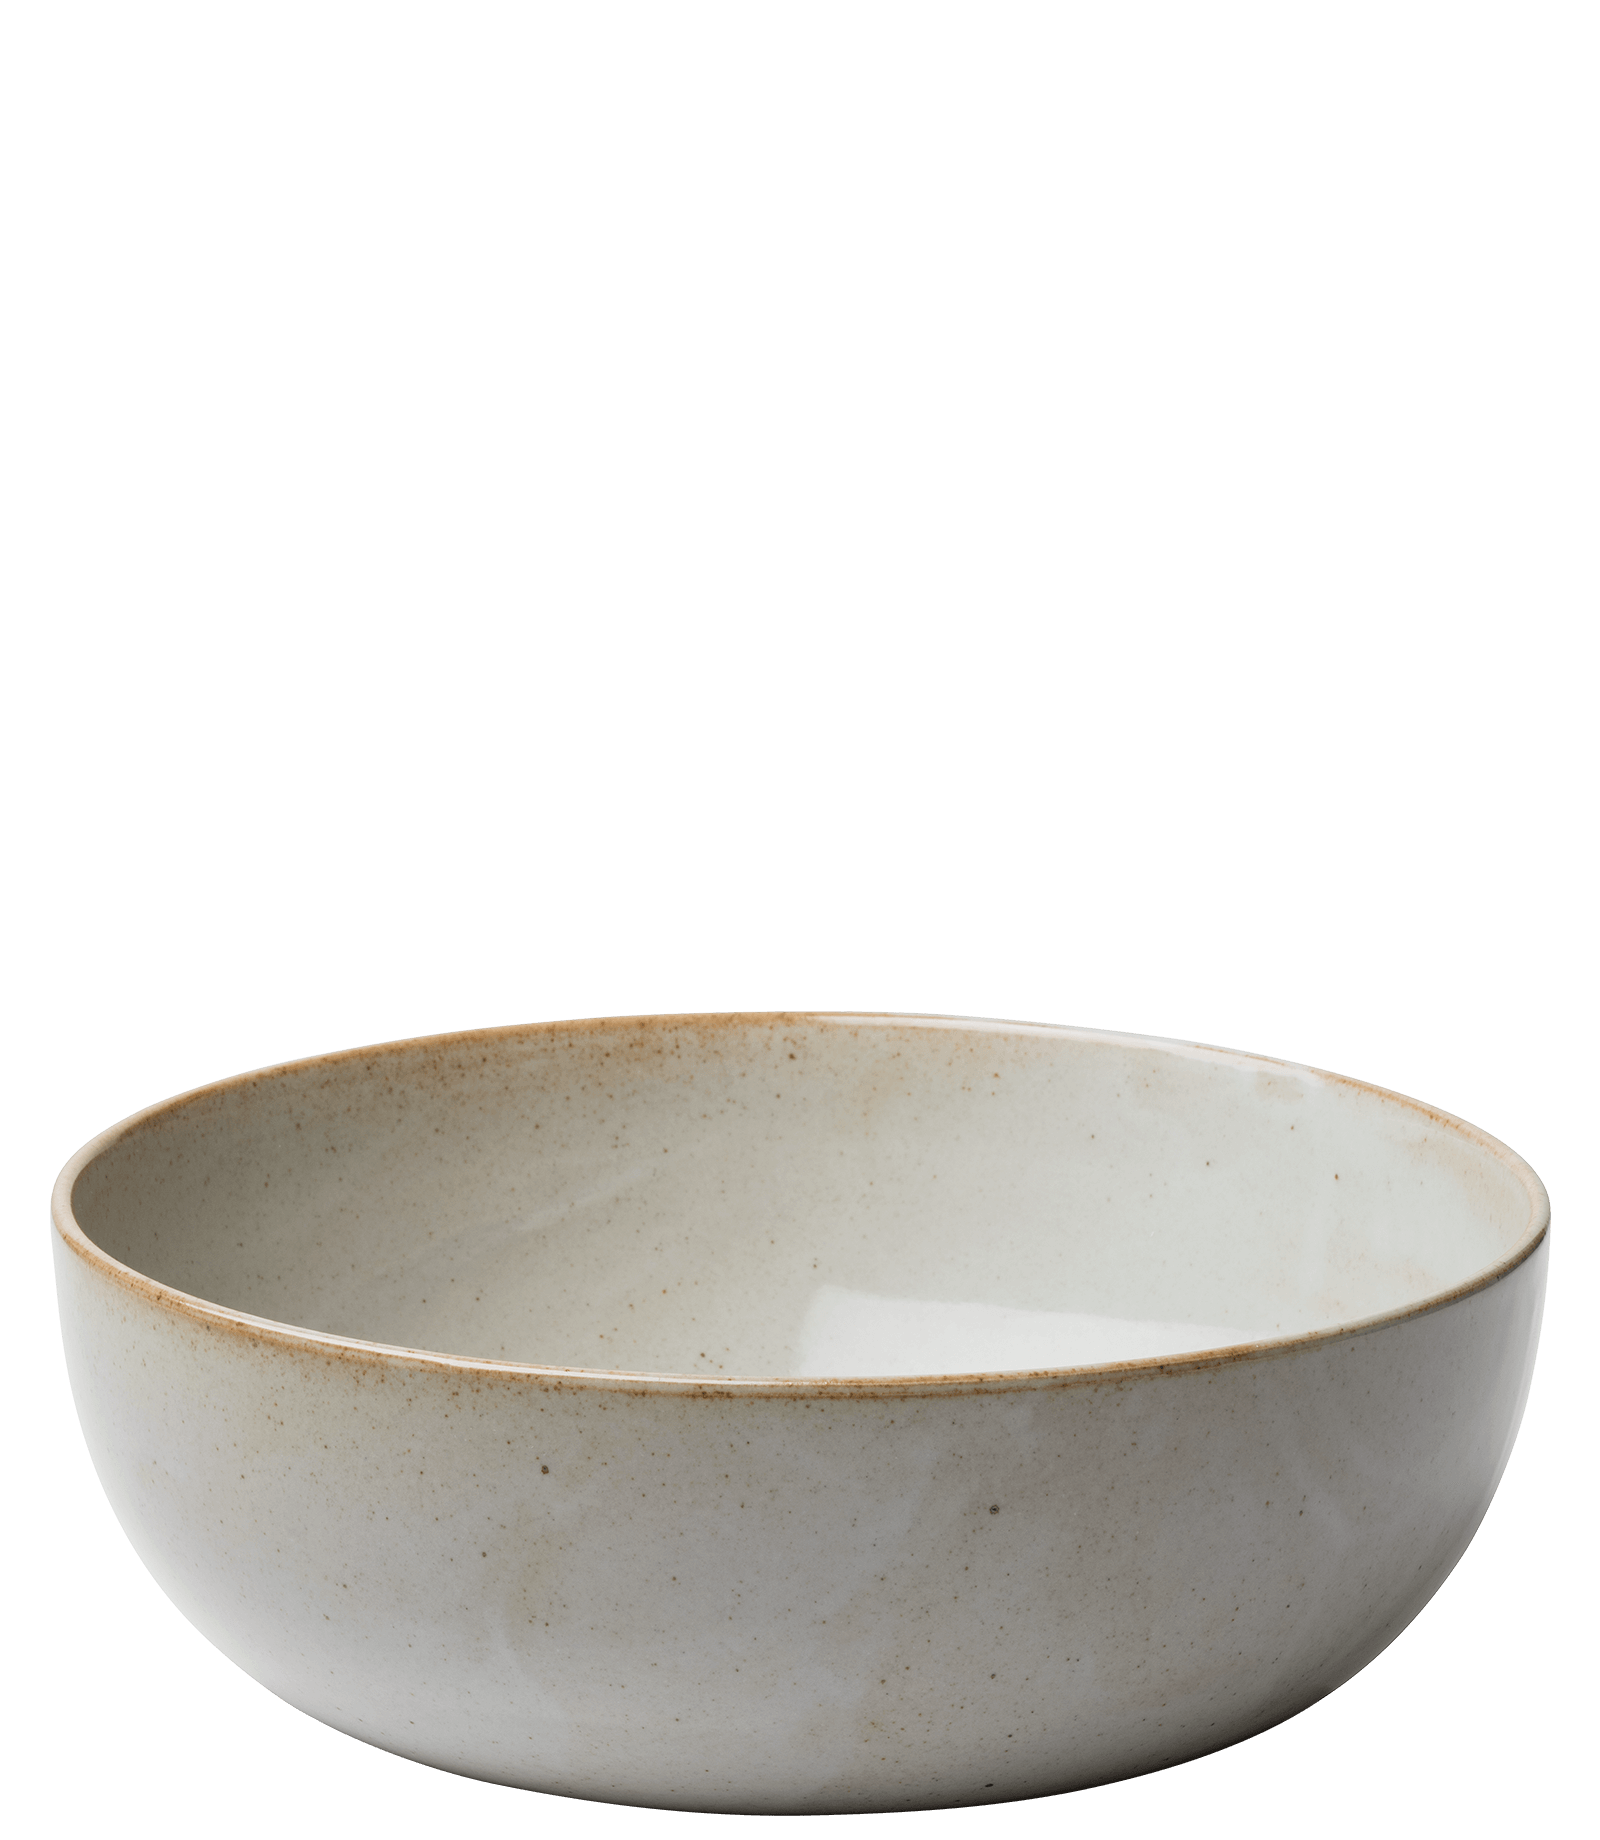 Png bowl. Objects earthenware